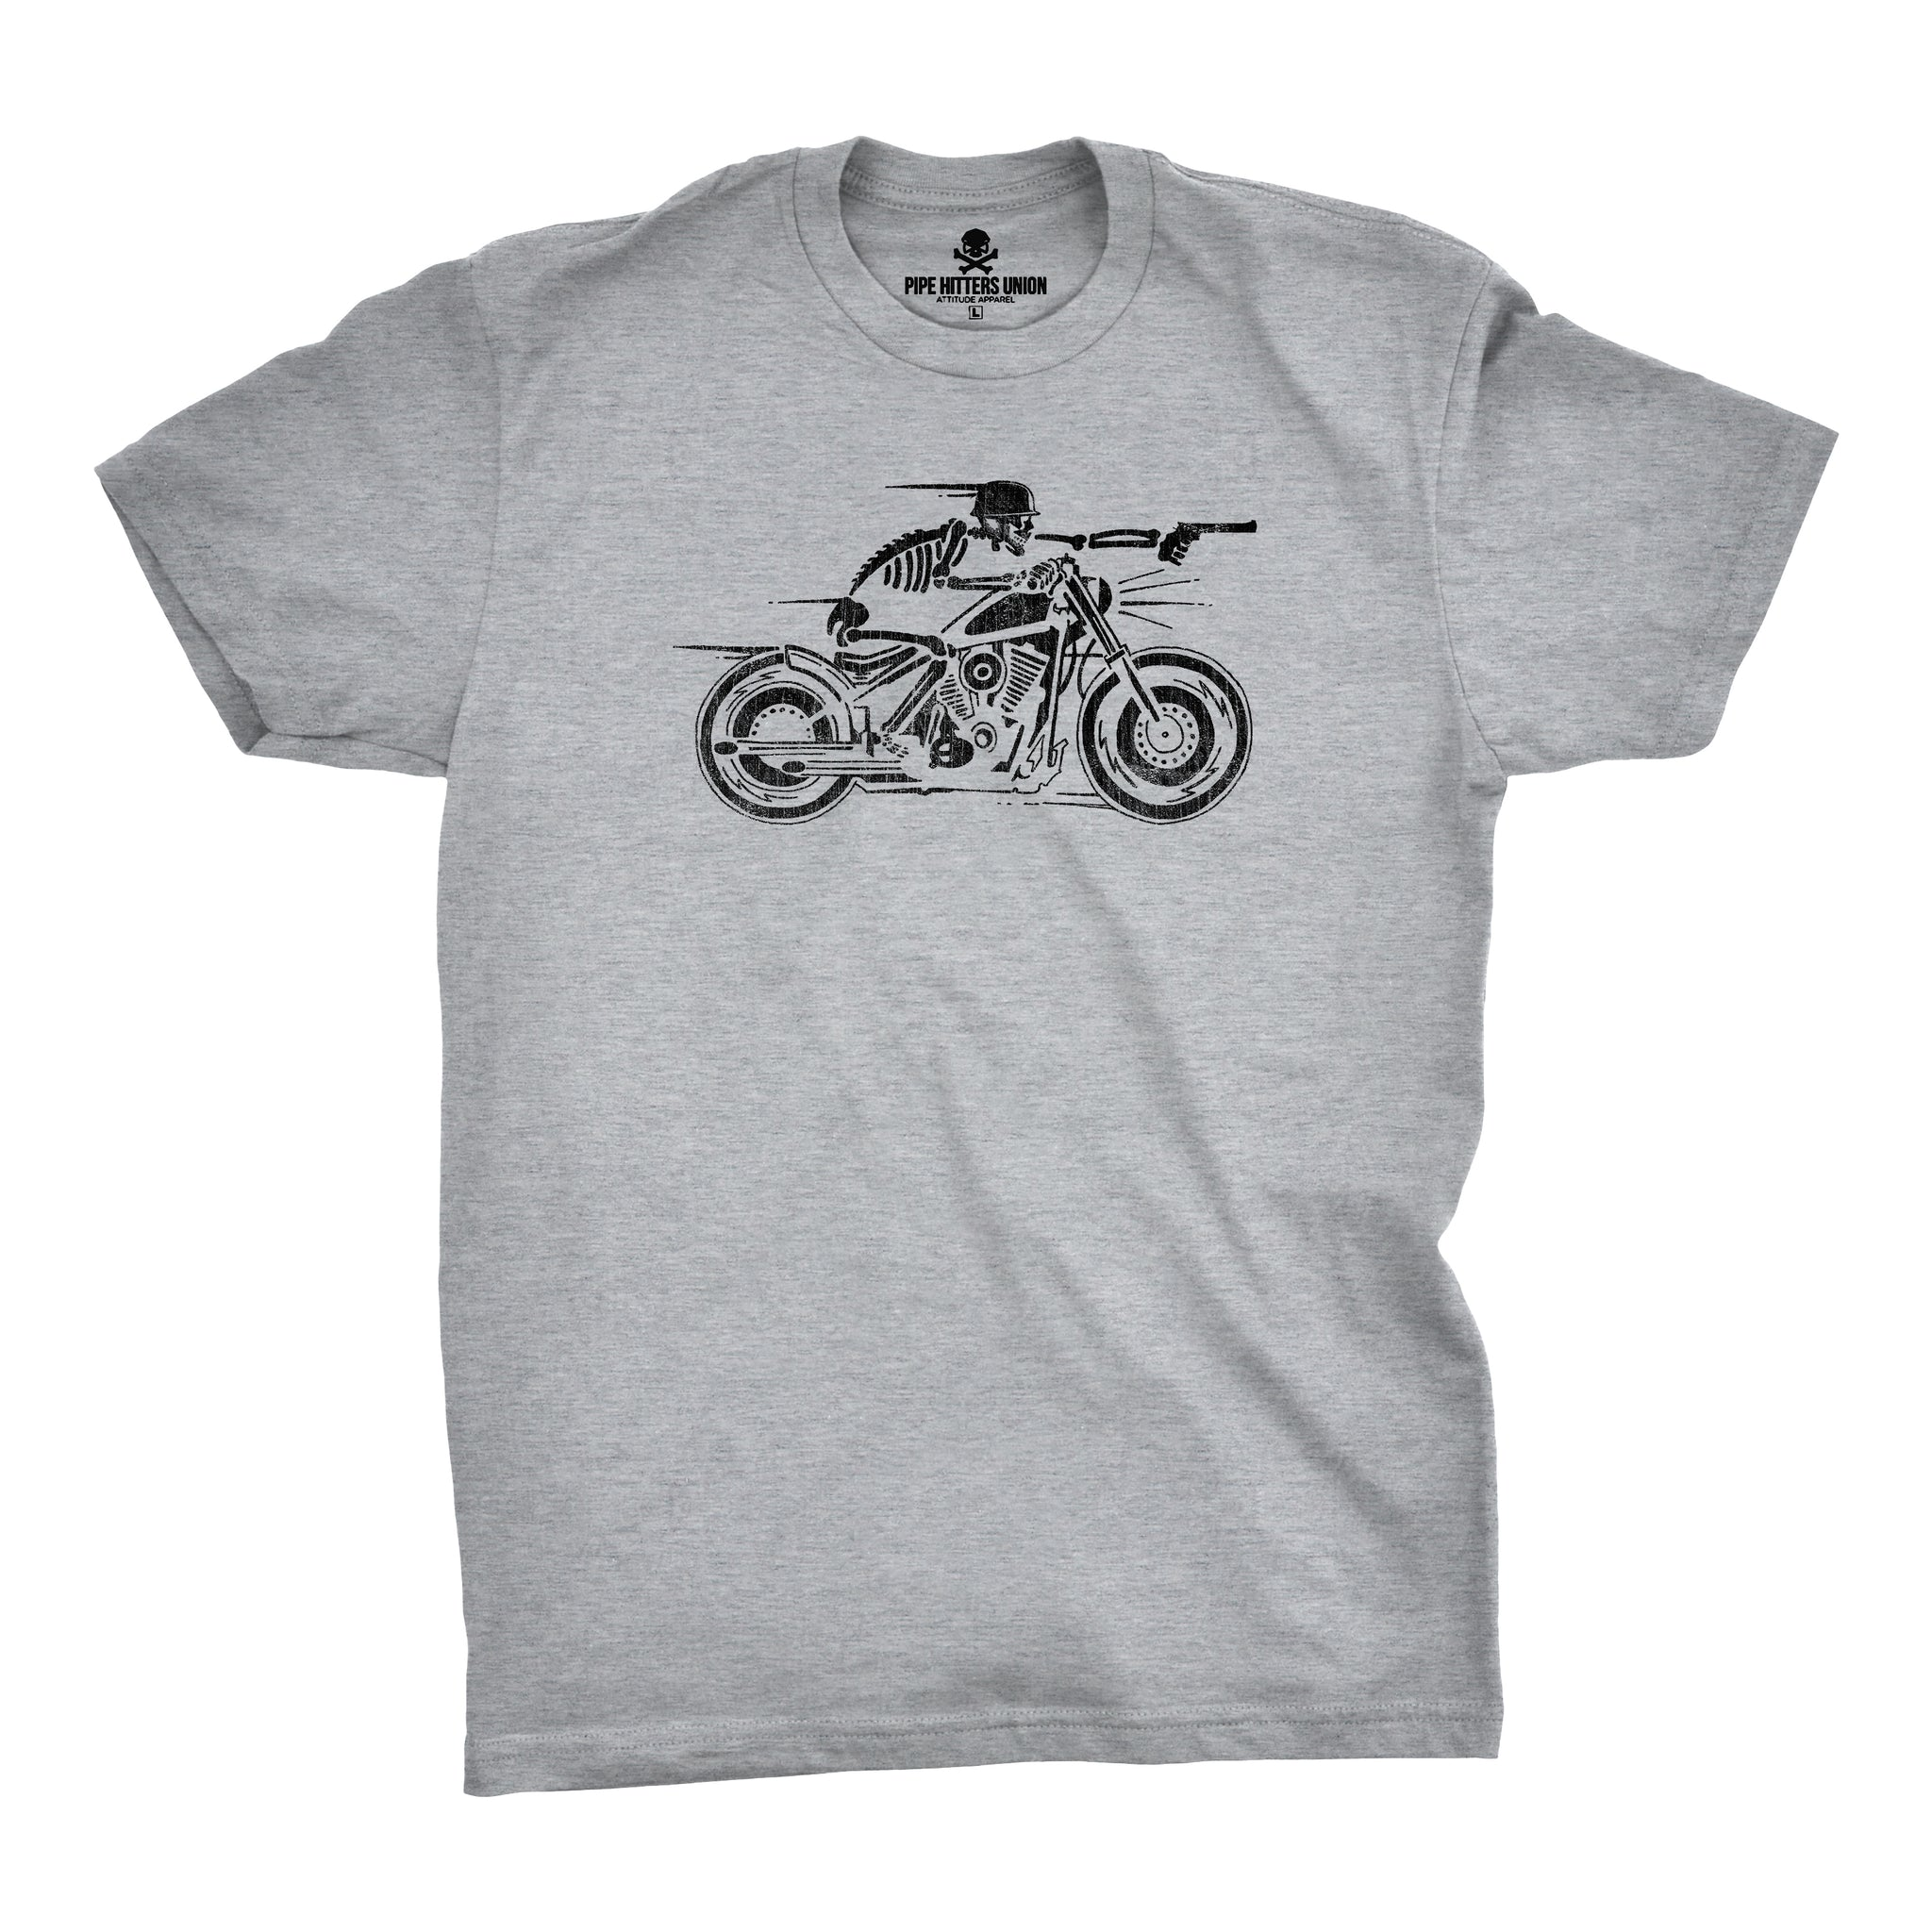 The Nomad - Grey - T-Shirts - Pipe Hitters Union